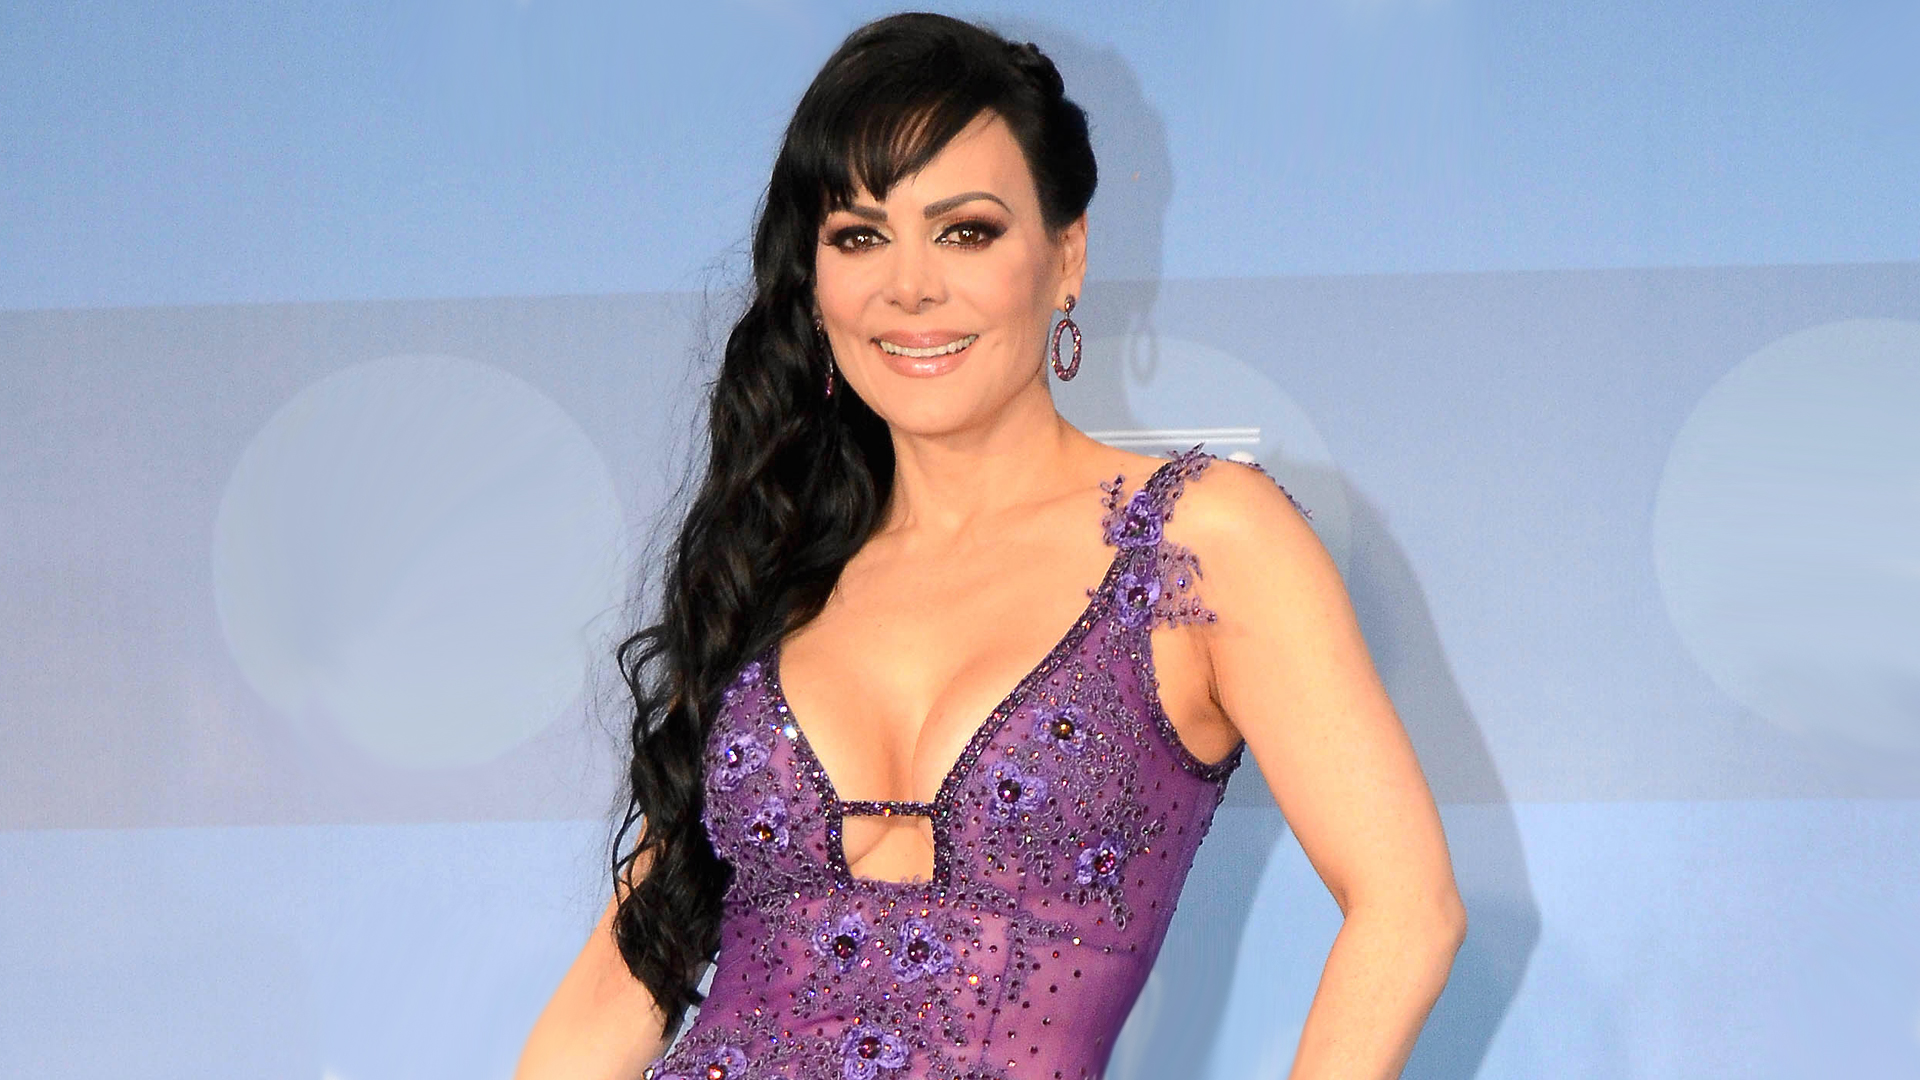 http://www.telemundo.com/sites/nbcutelemundo/files/images/promo/article/2016/09/01/maribel-guardia-0901.jpg